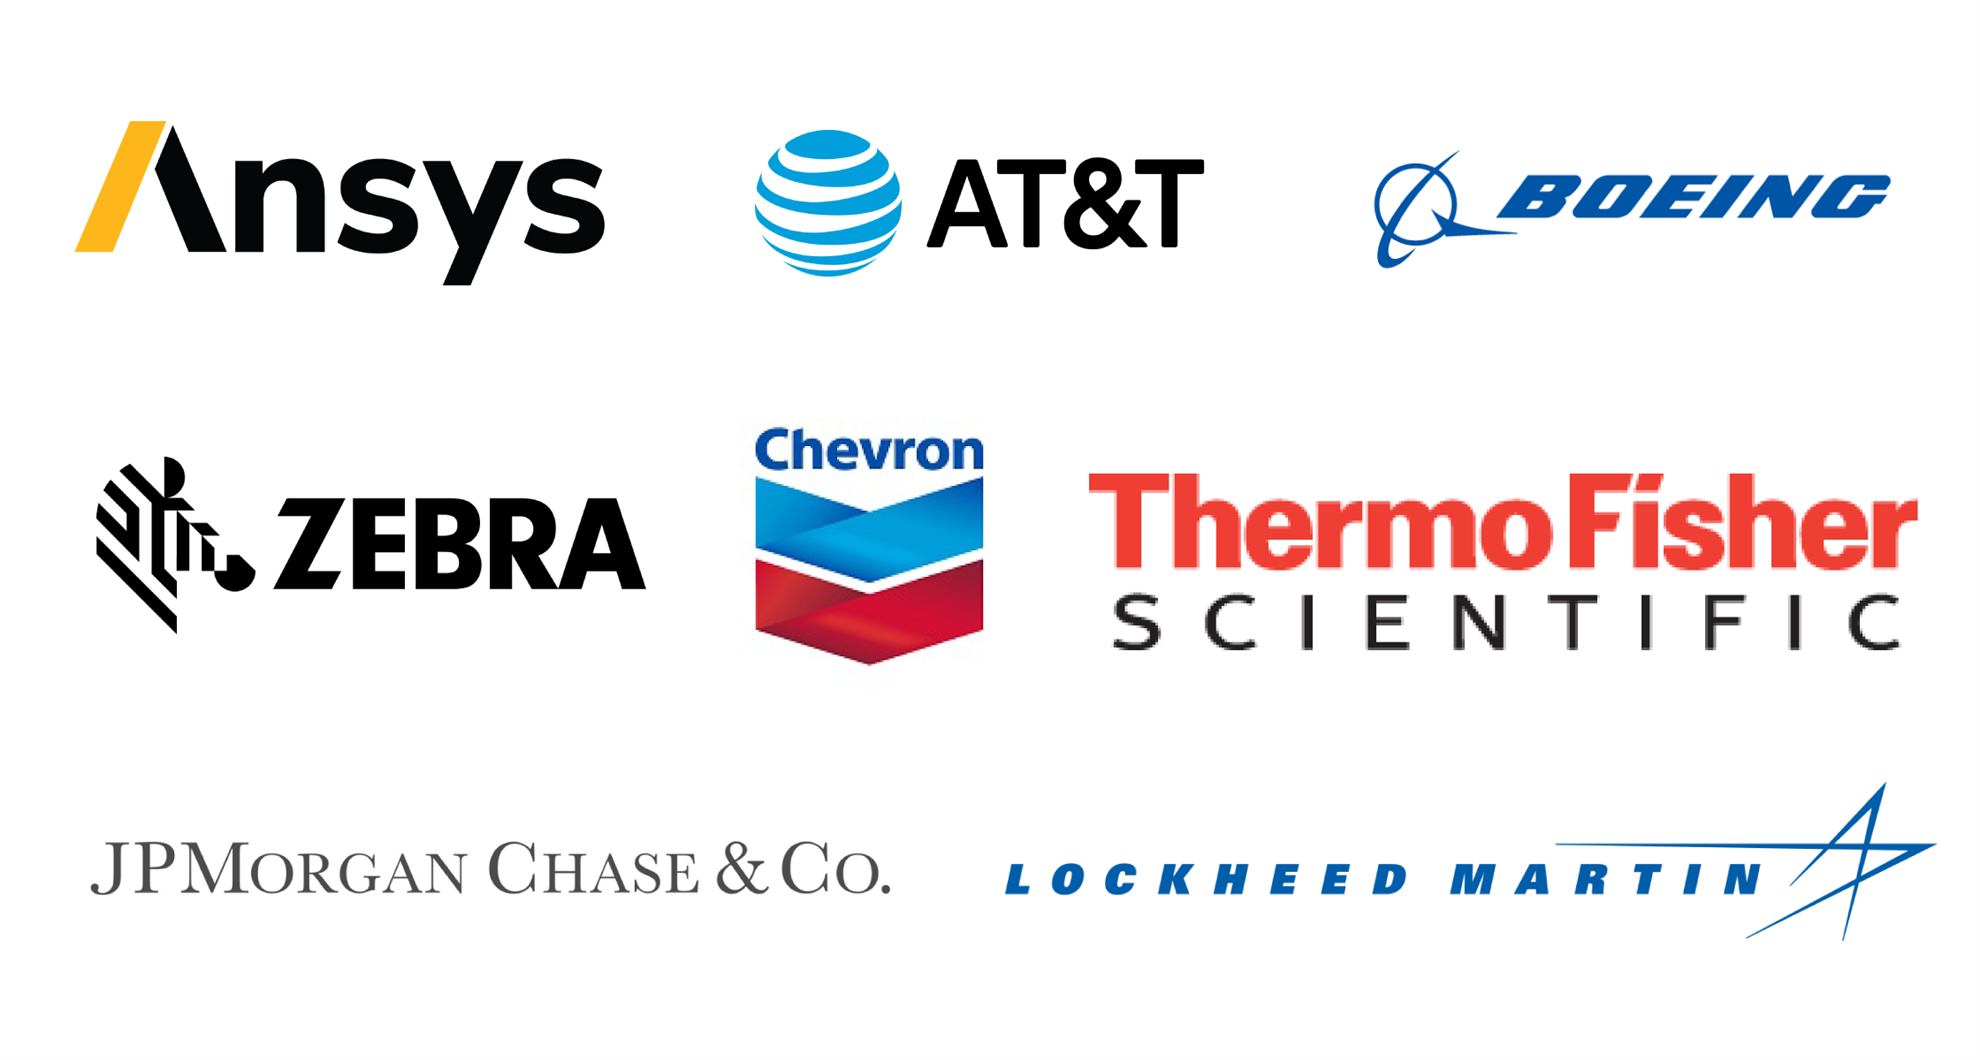 OAC Sponsors, which include: Ansys, AT&T, Boeing, Chevron, Thermo Fisher, Lockheed Martin, JP Morgan & Chase, Zebra